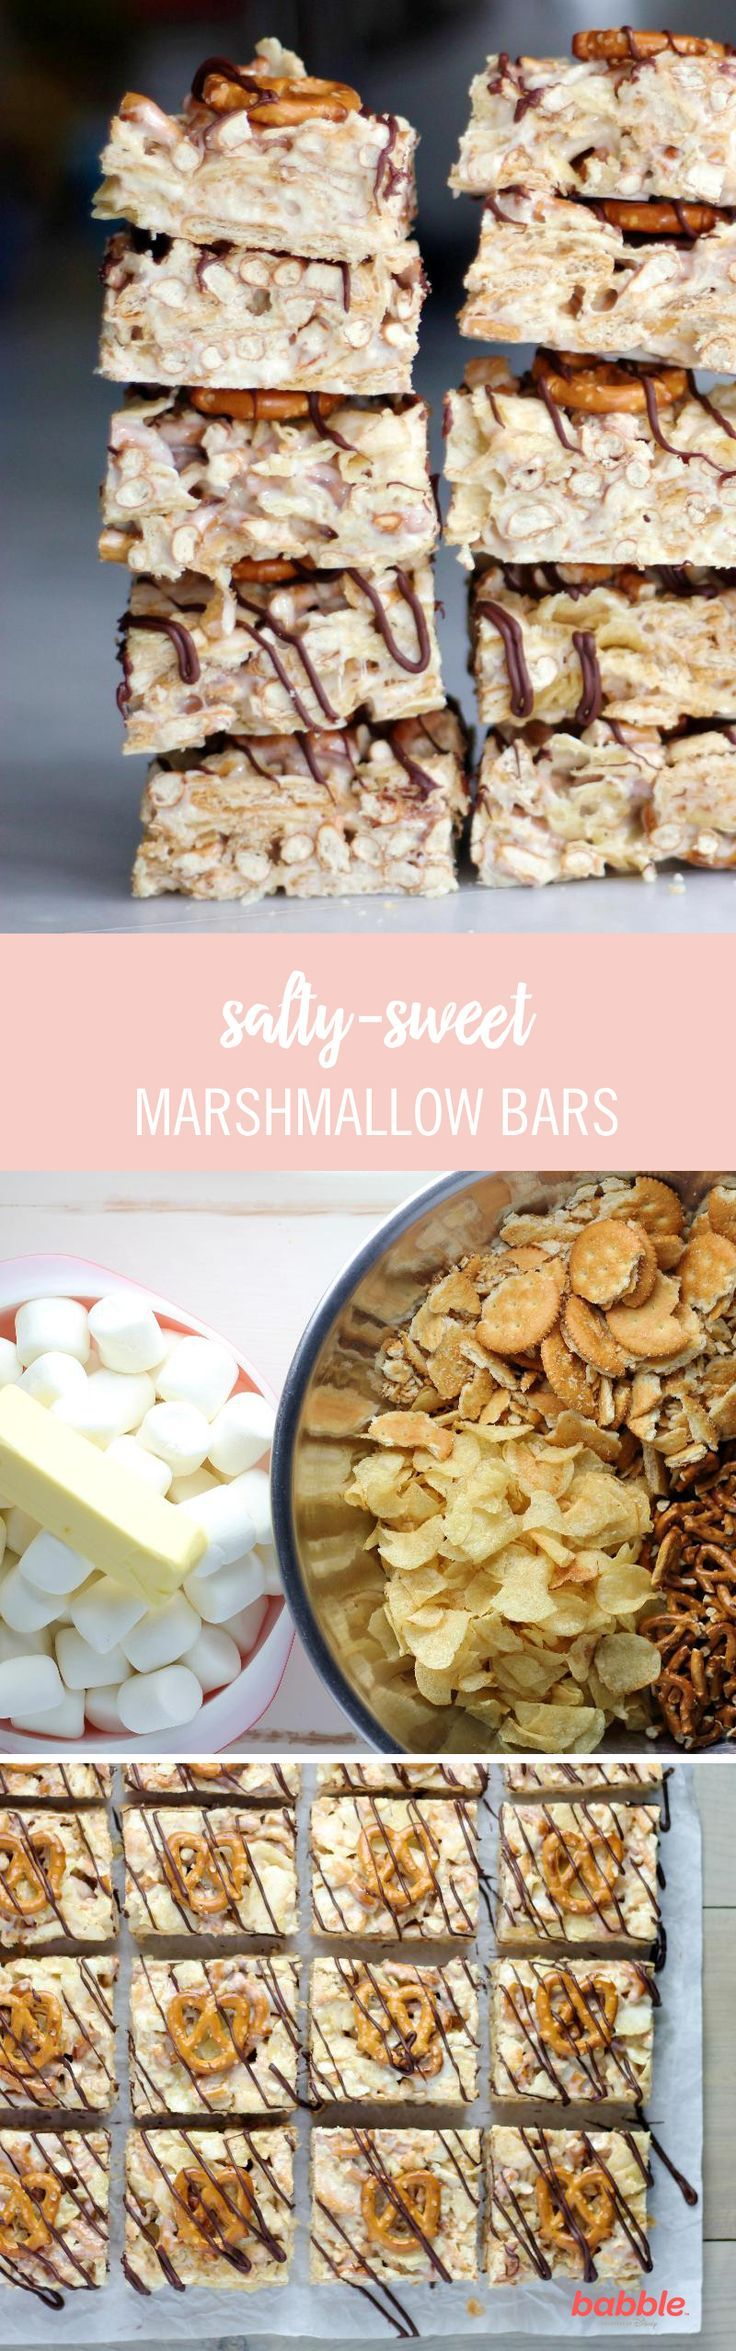 Instead of the usual rice krispies, these salty-sweet marshmallow bars are filled with your favorite mix-ins, like salty potato chips, crunchy pretzels, and delicious crackers. These treats don't need to be baked, so dig right in! Click here for the dessert recipe.